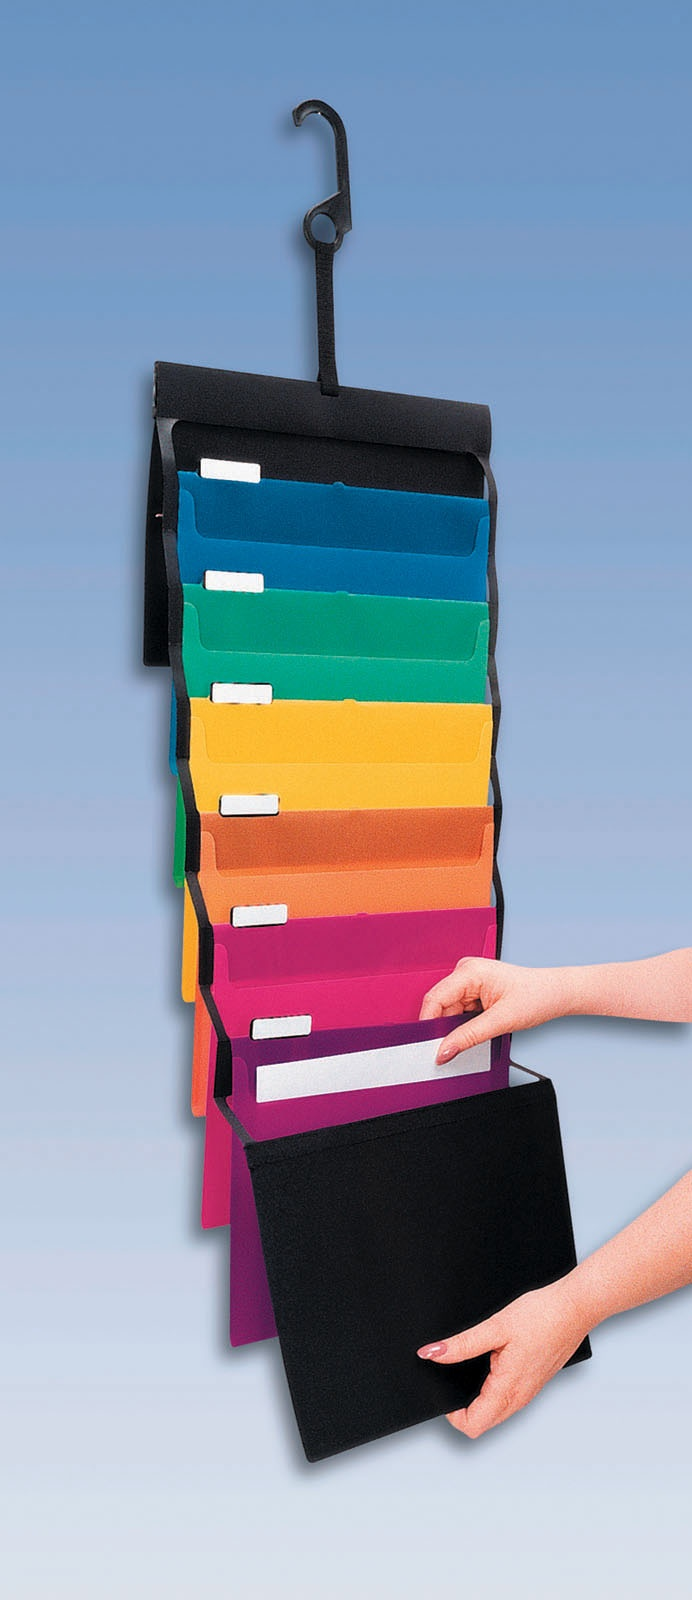 1000 ideas about Hanging Files on Pinterest